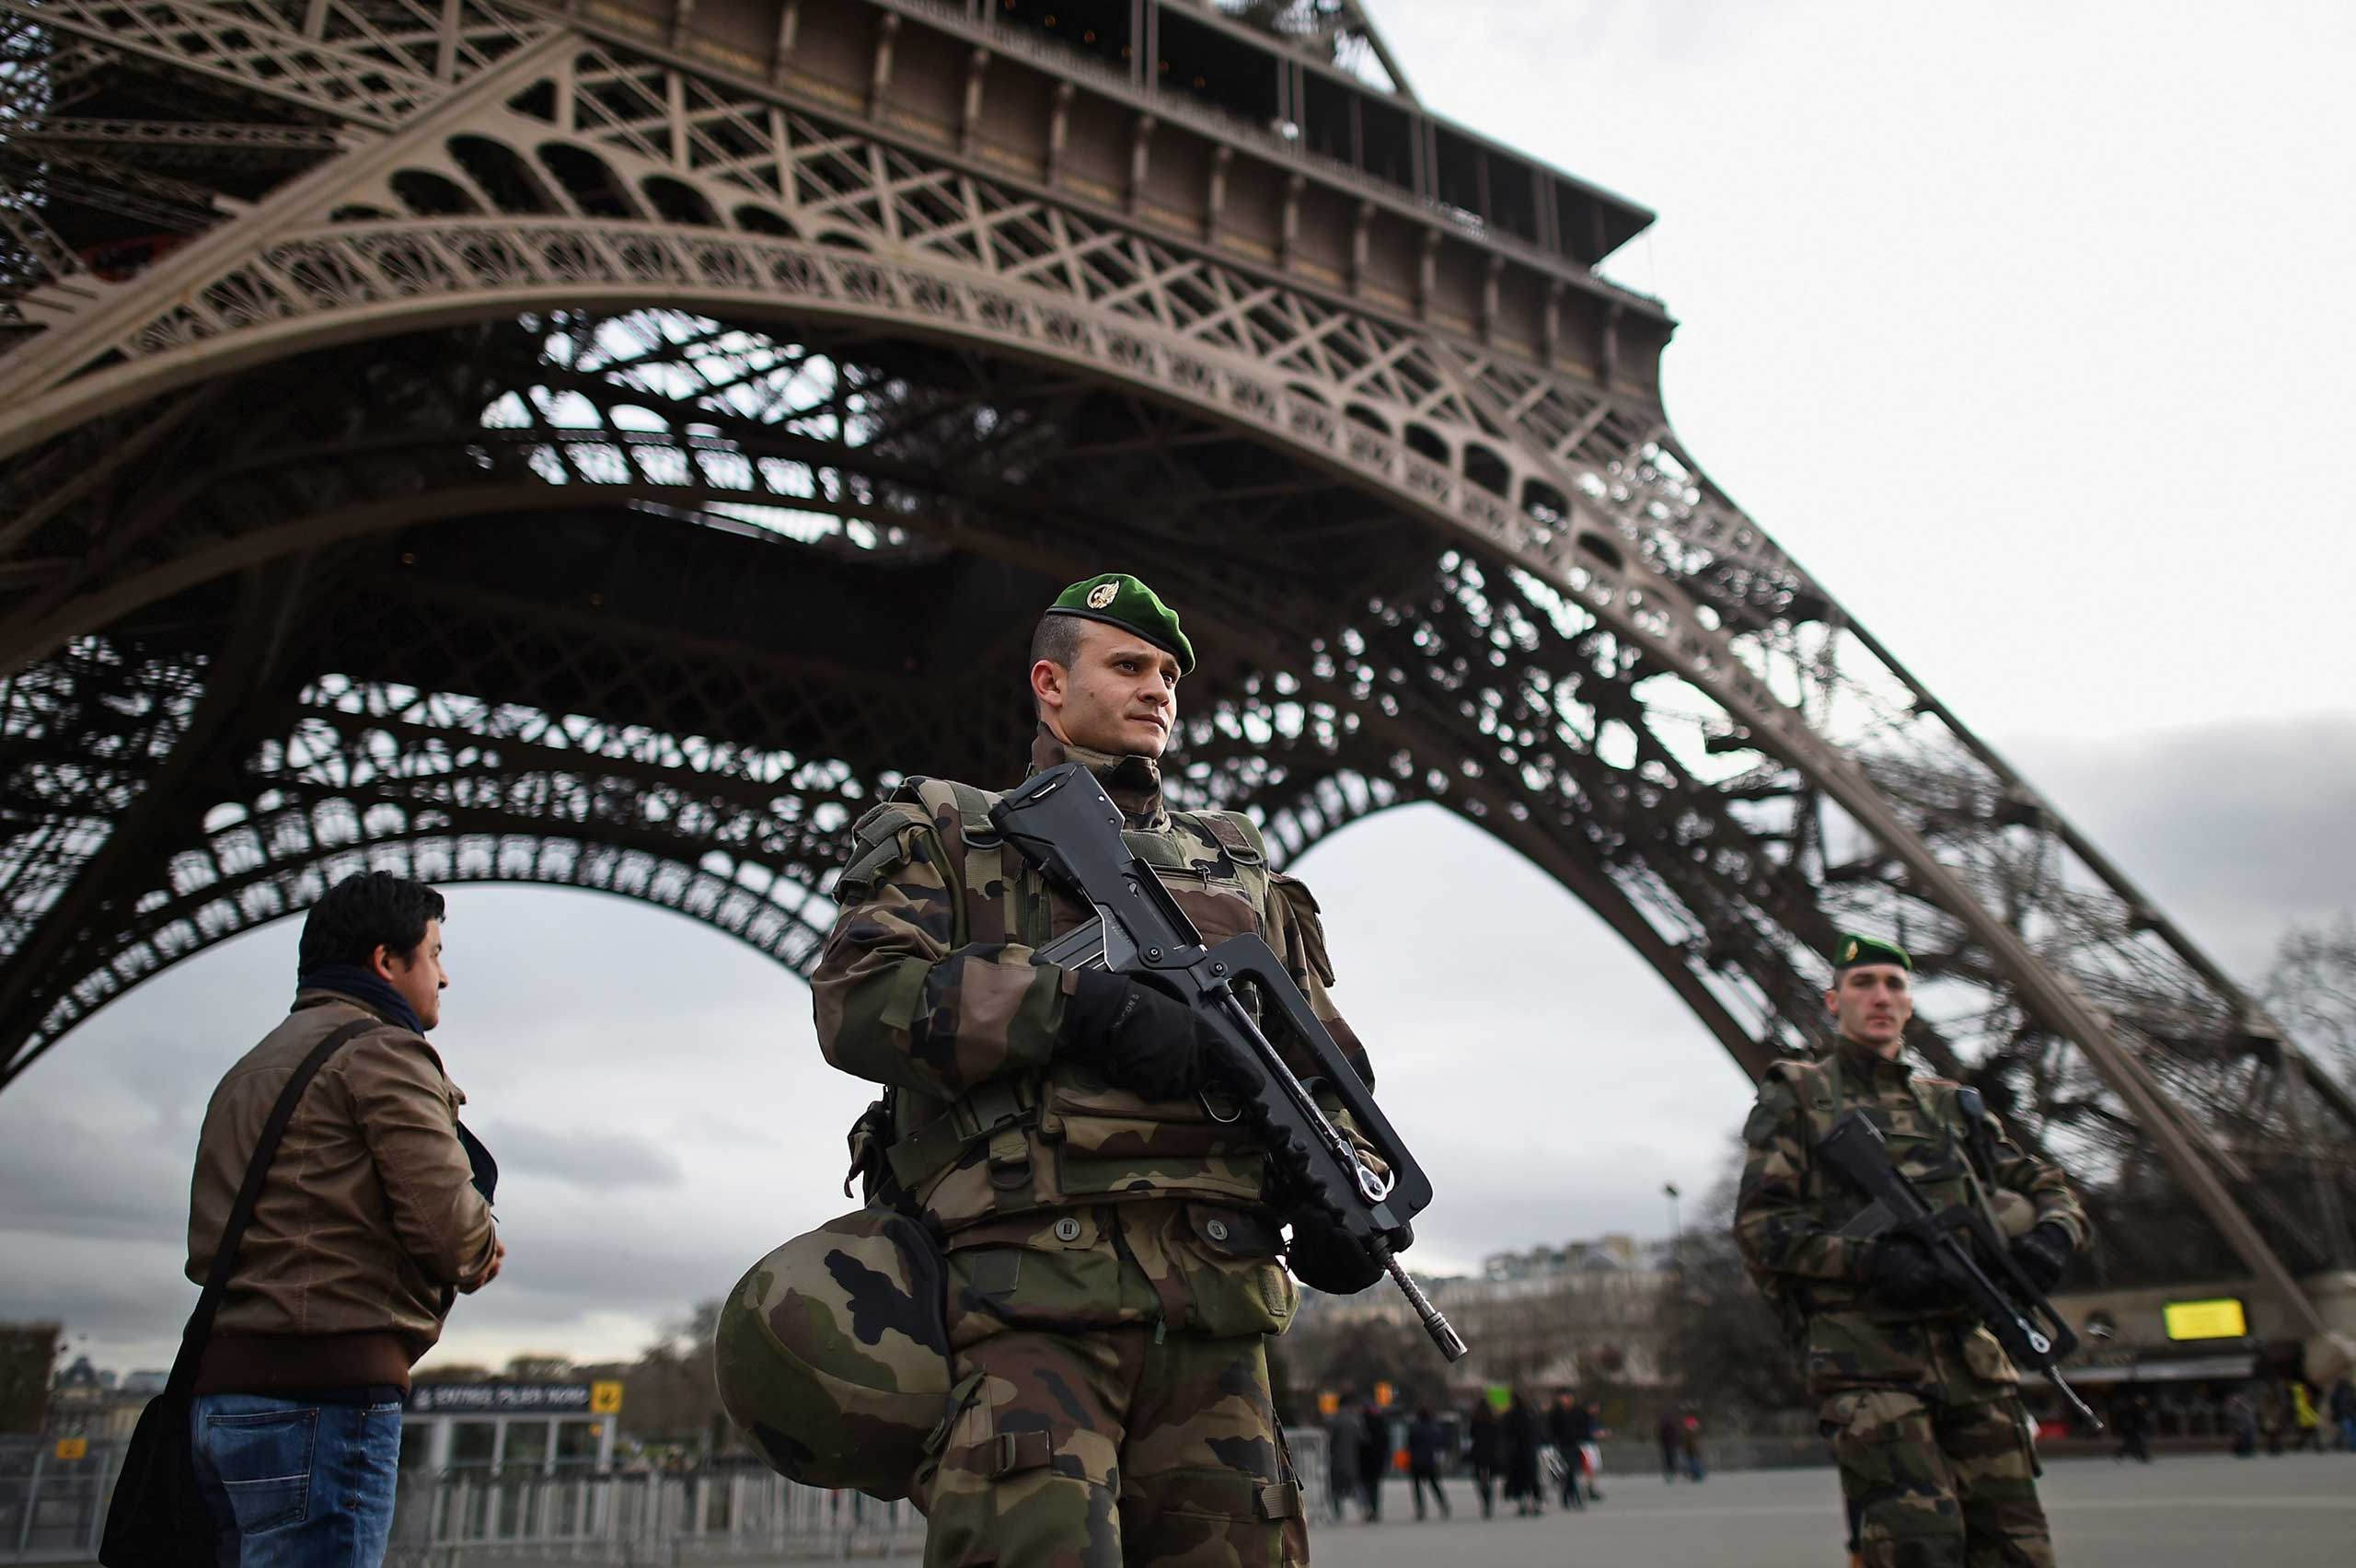 French troops patrol around the Eiffel Tower in Paris on Jan. 12, 2015